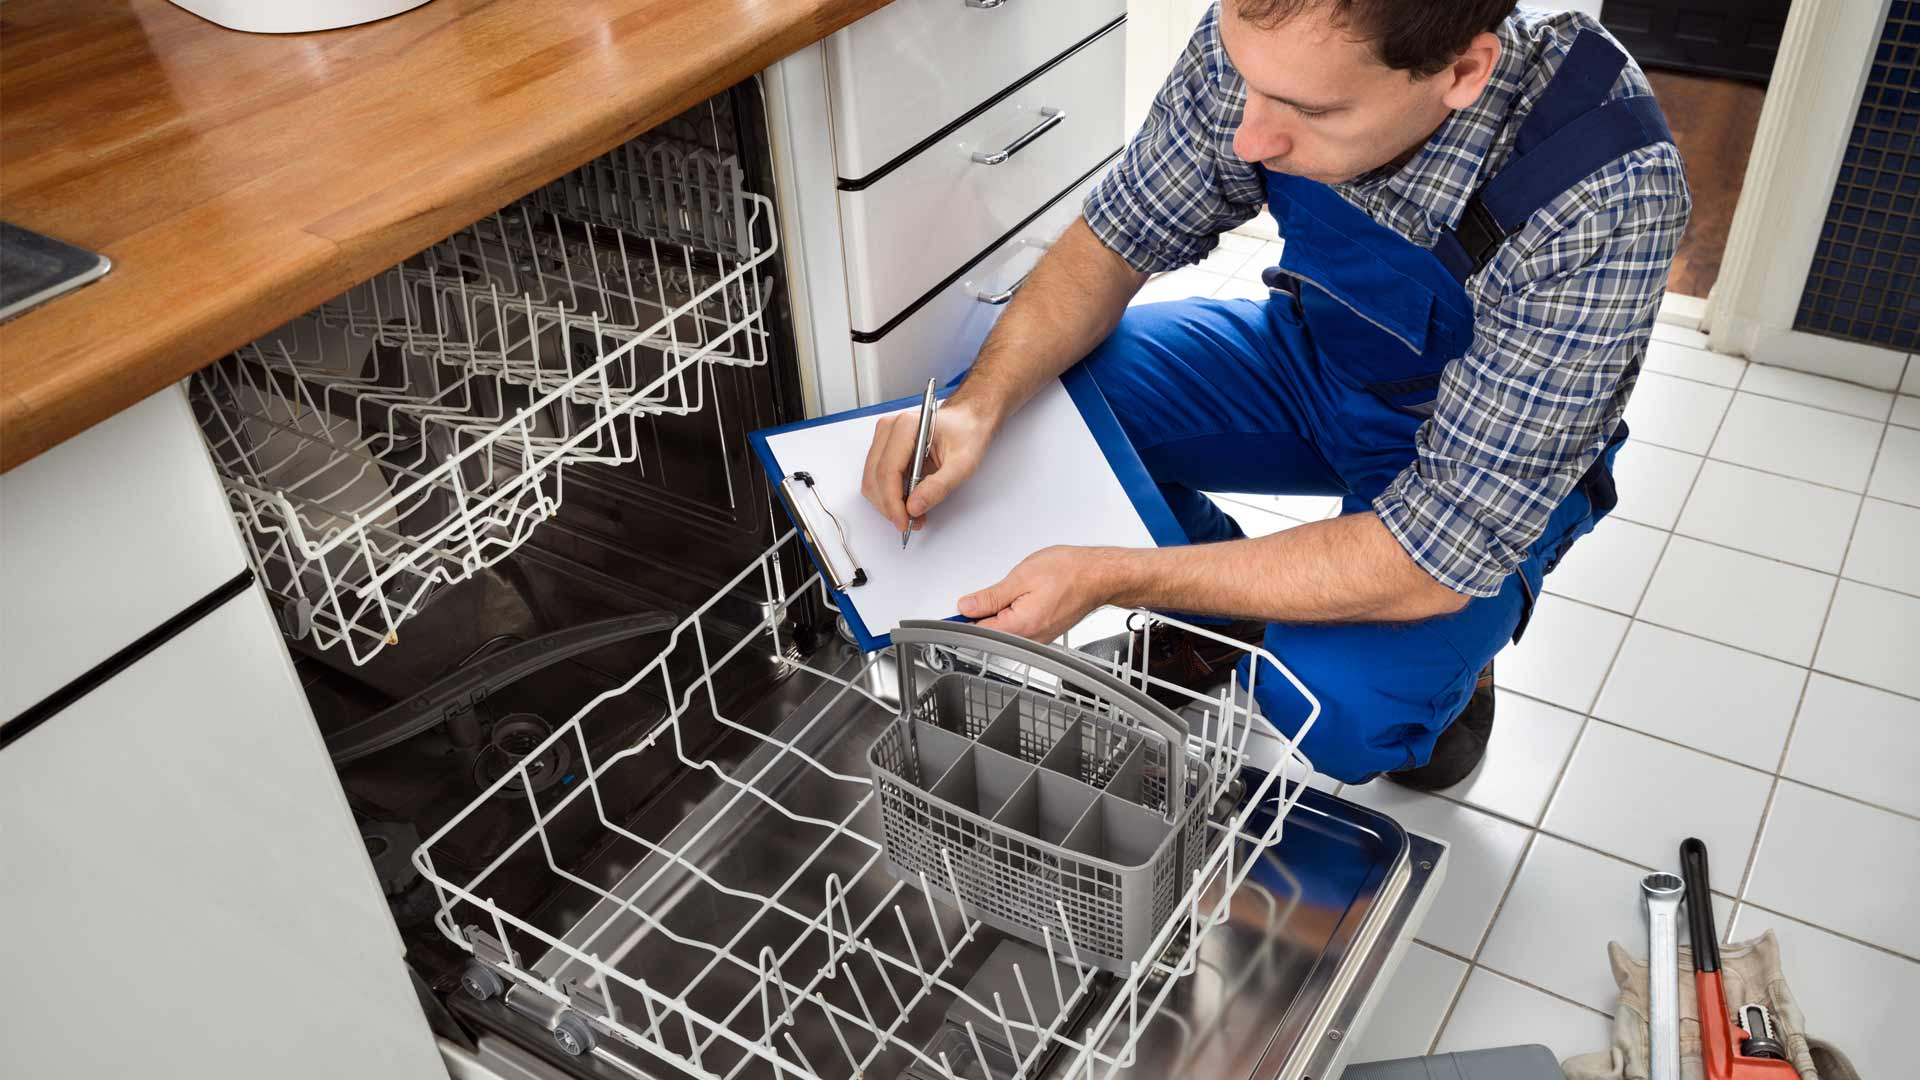 Dishwasher Repair in Calabasas. Tel: (800) 530-7906